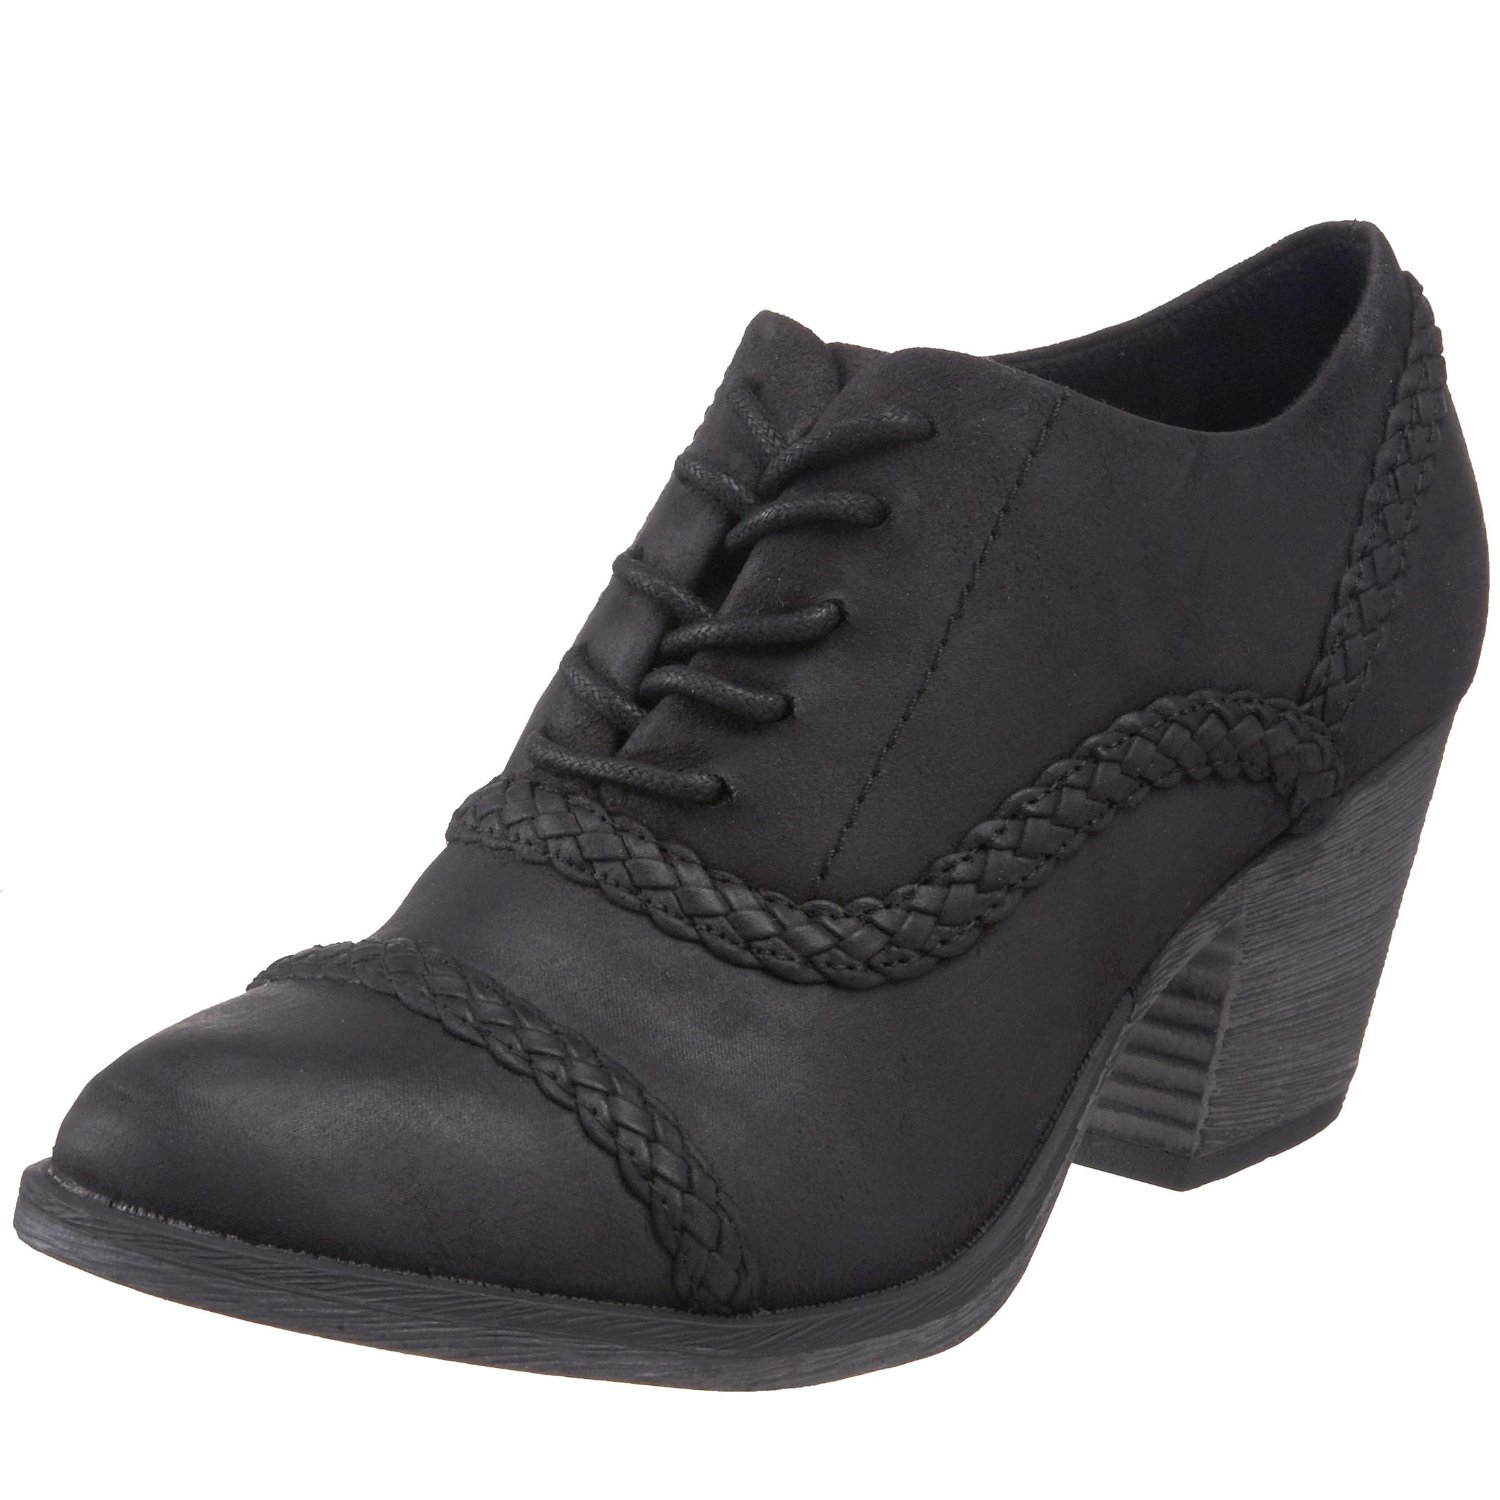 Vegan chunky heeled oxfords